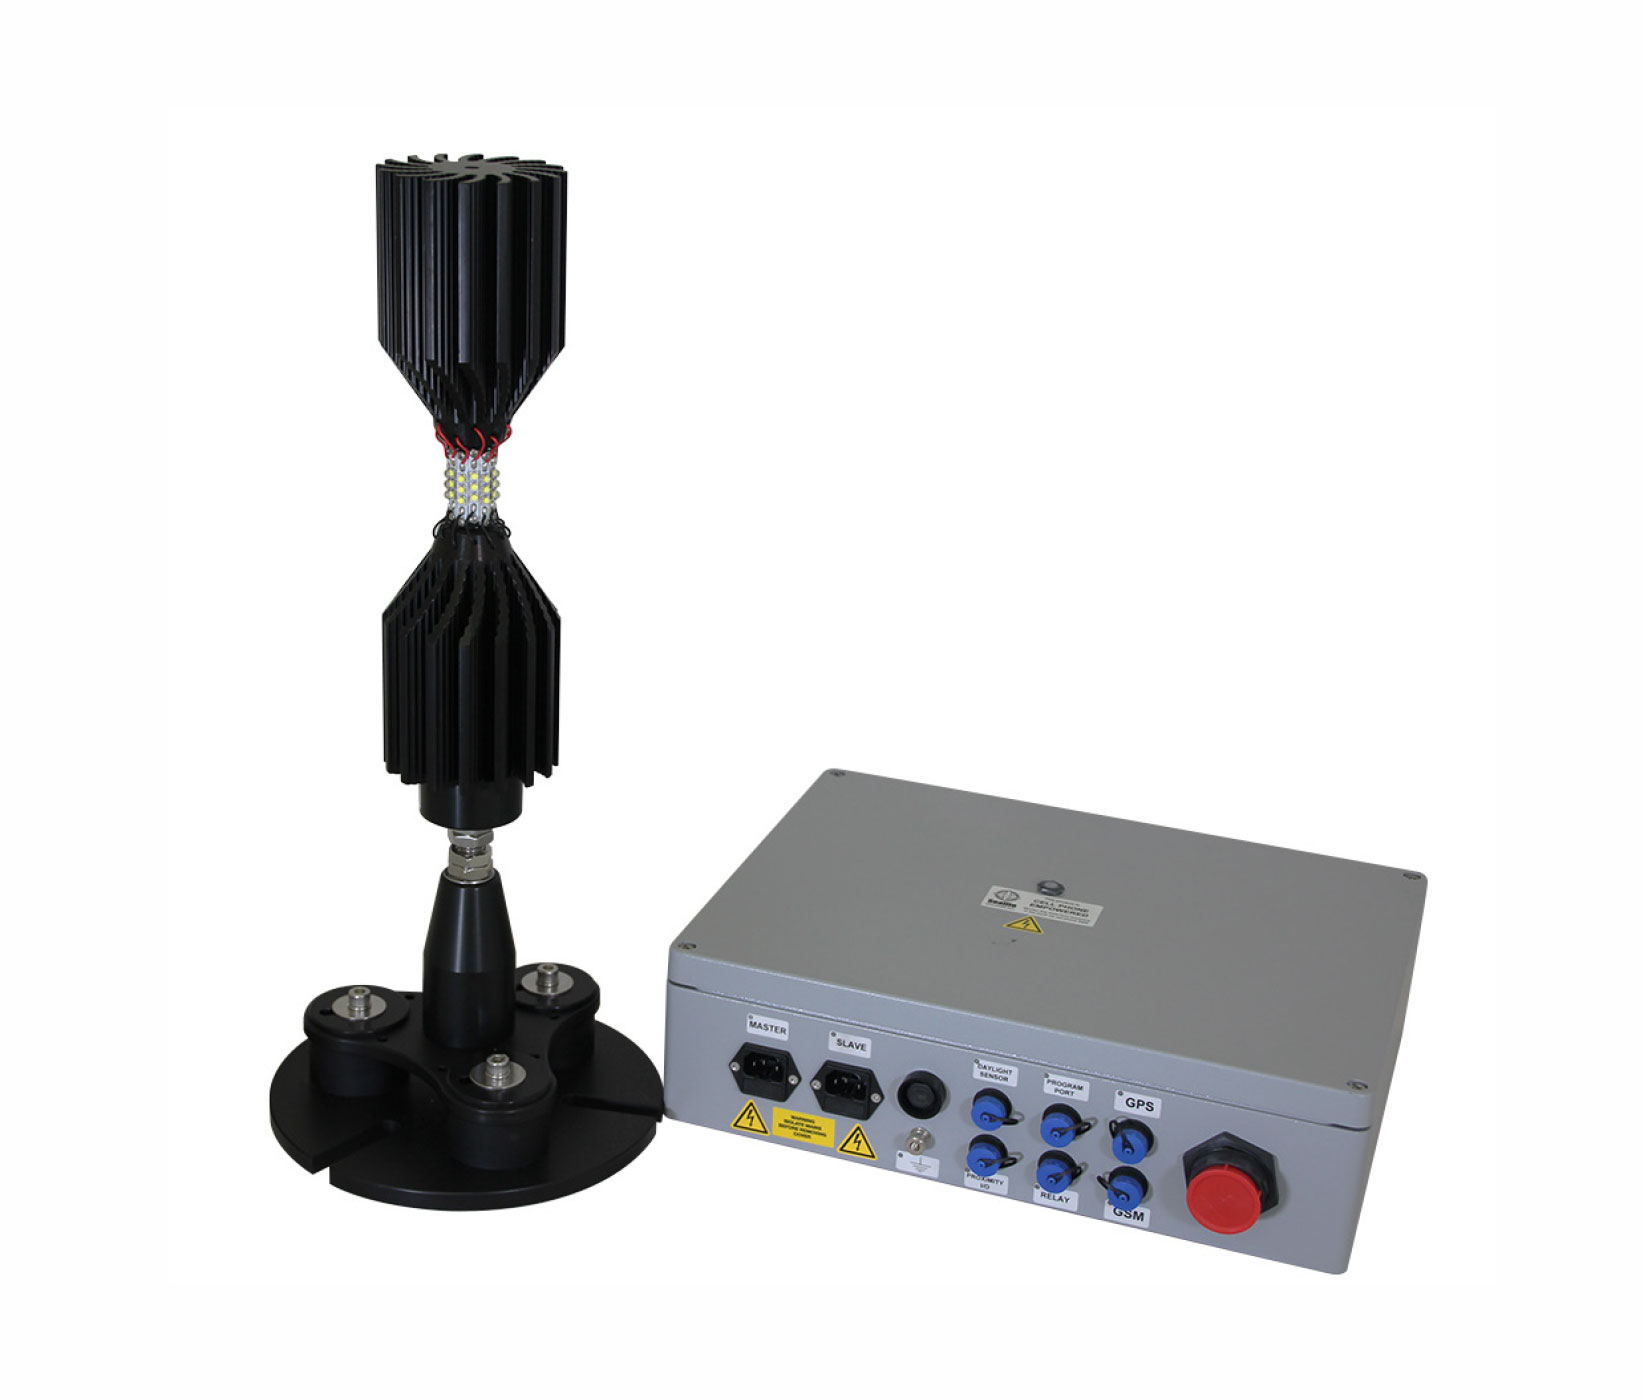 Universal Lighthouse LED Controller (SL-LED-CTRL)